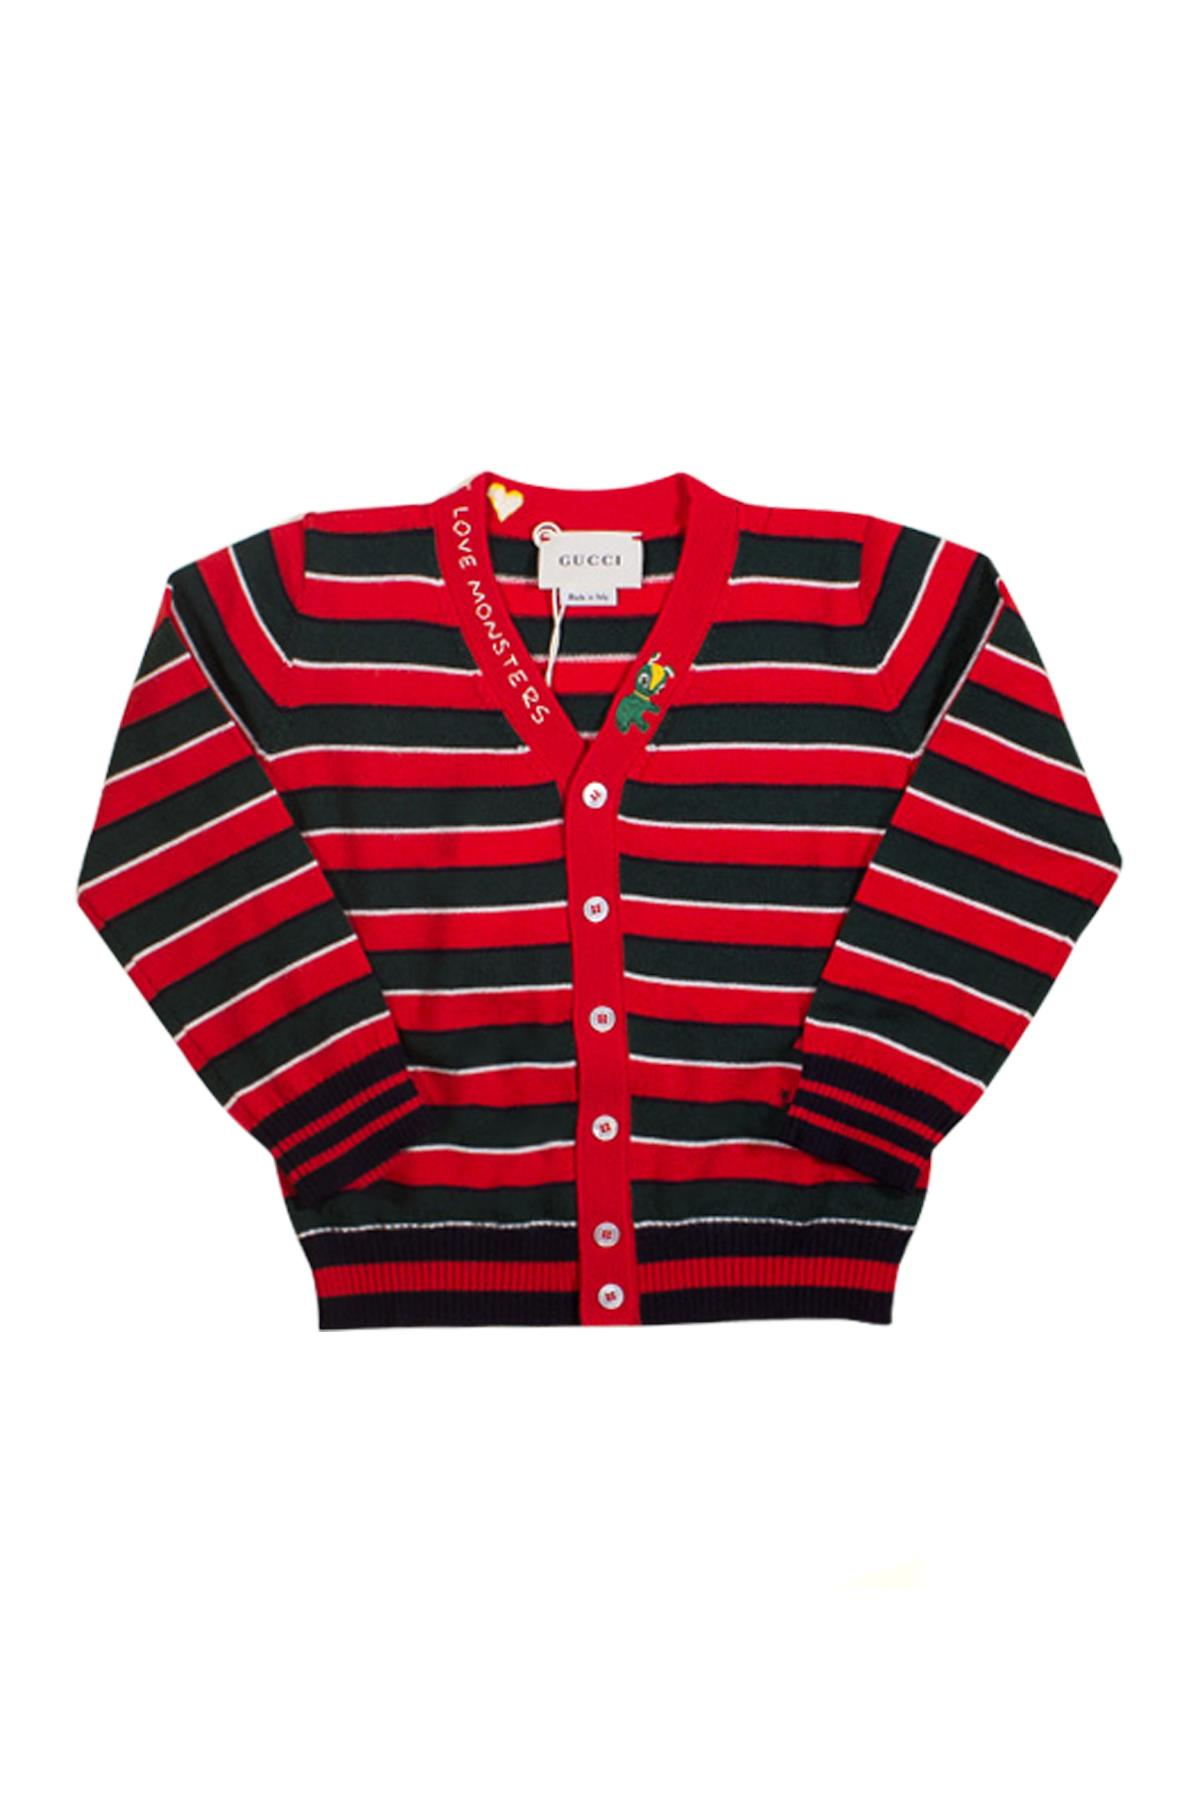 84a3218d2bf RED CARDIGAN GUCCI KIDS WITH WHITE AND GREEN STRIPES - GUCCI KIDS ...